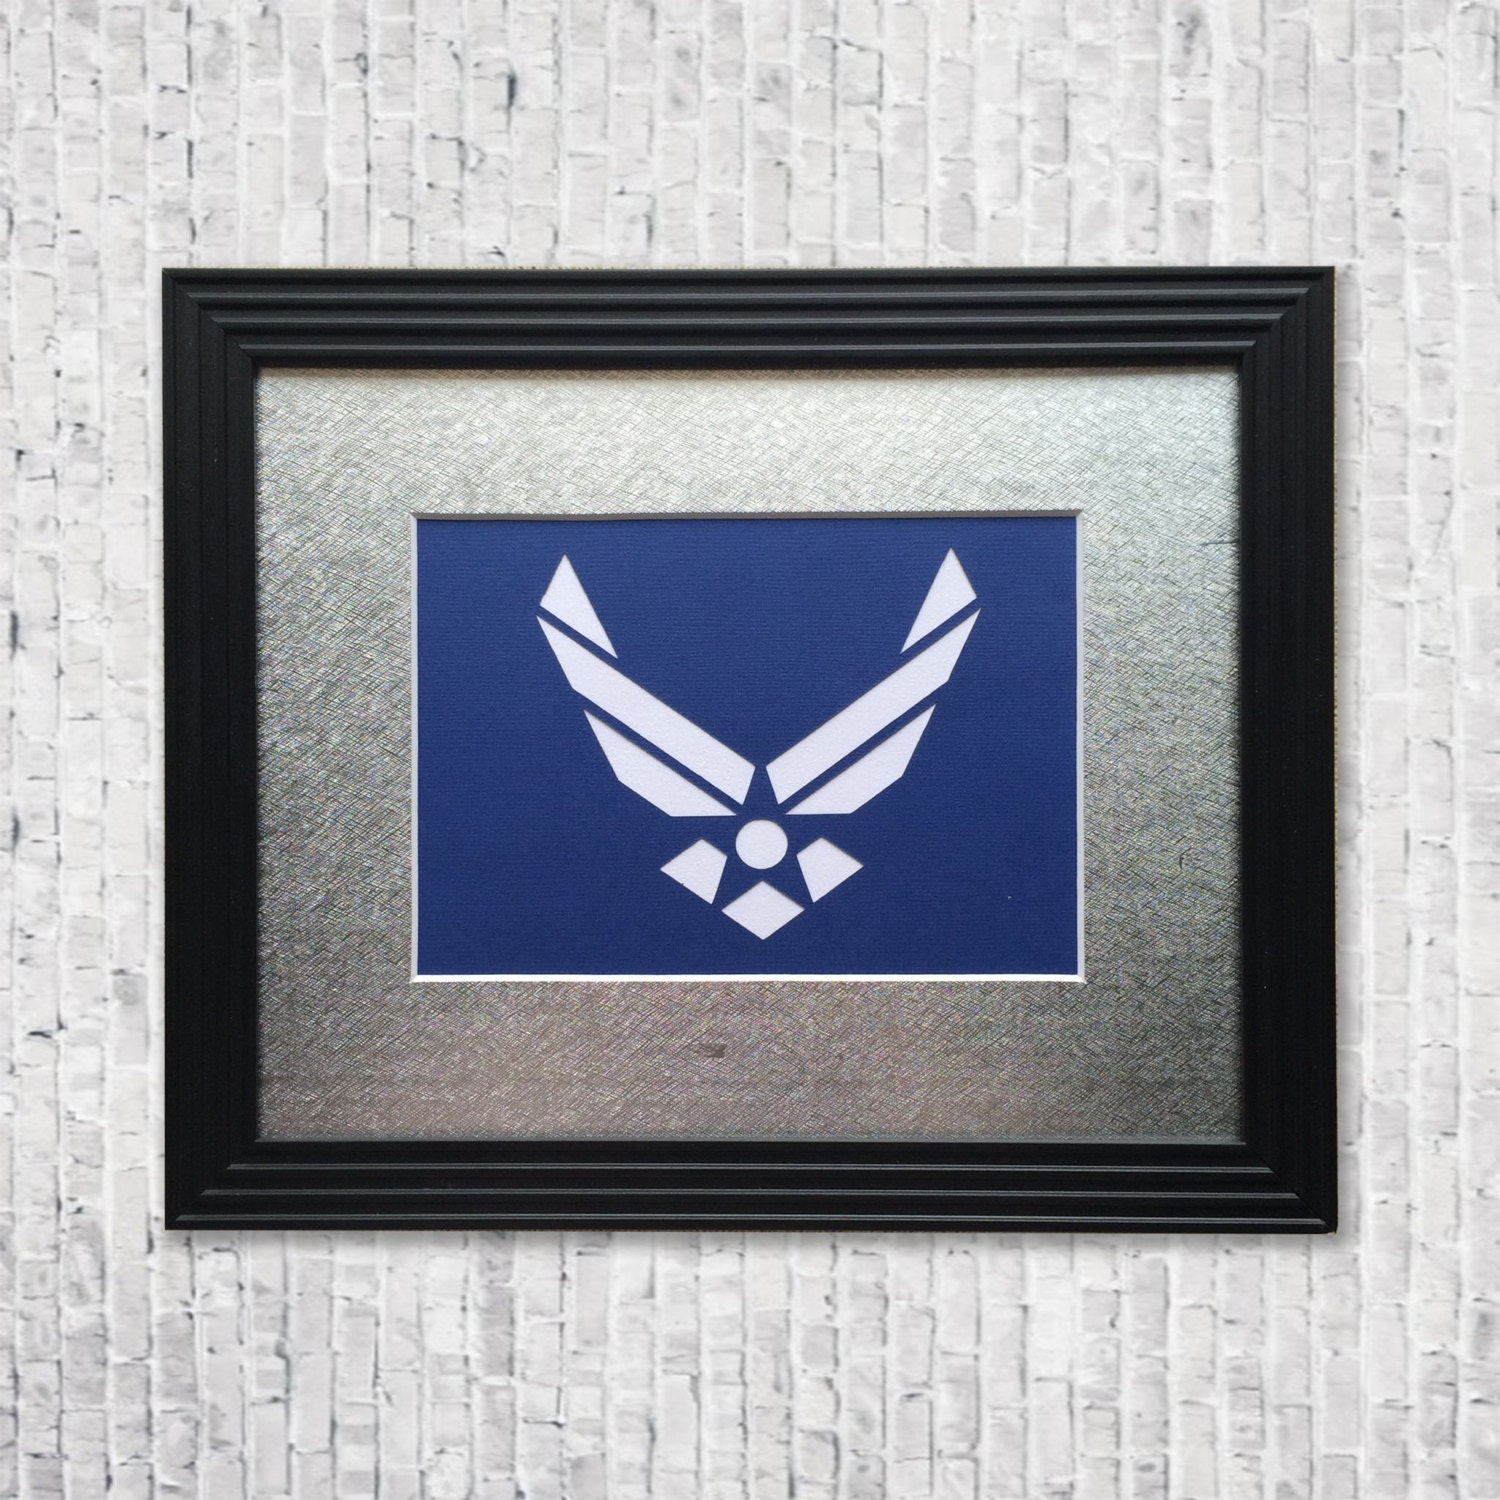 Usaf Wall Decor : Handcut airforce wall decor service art military